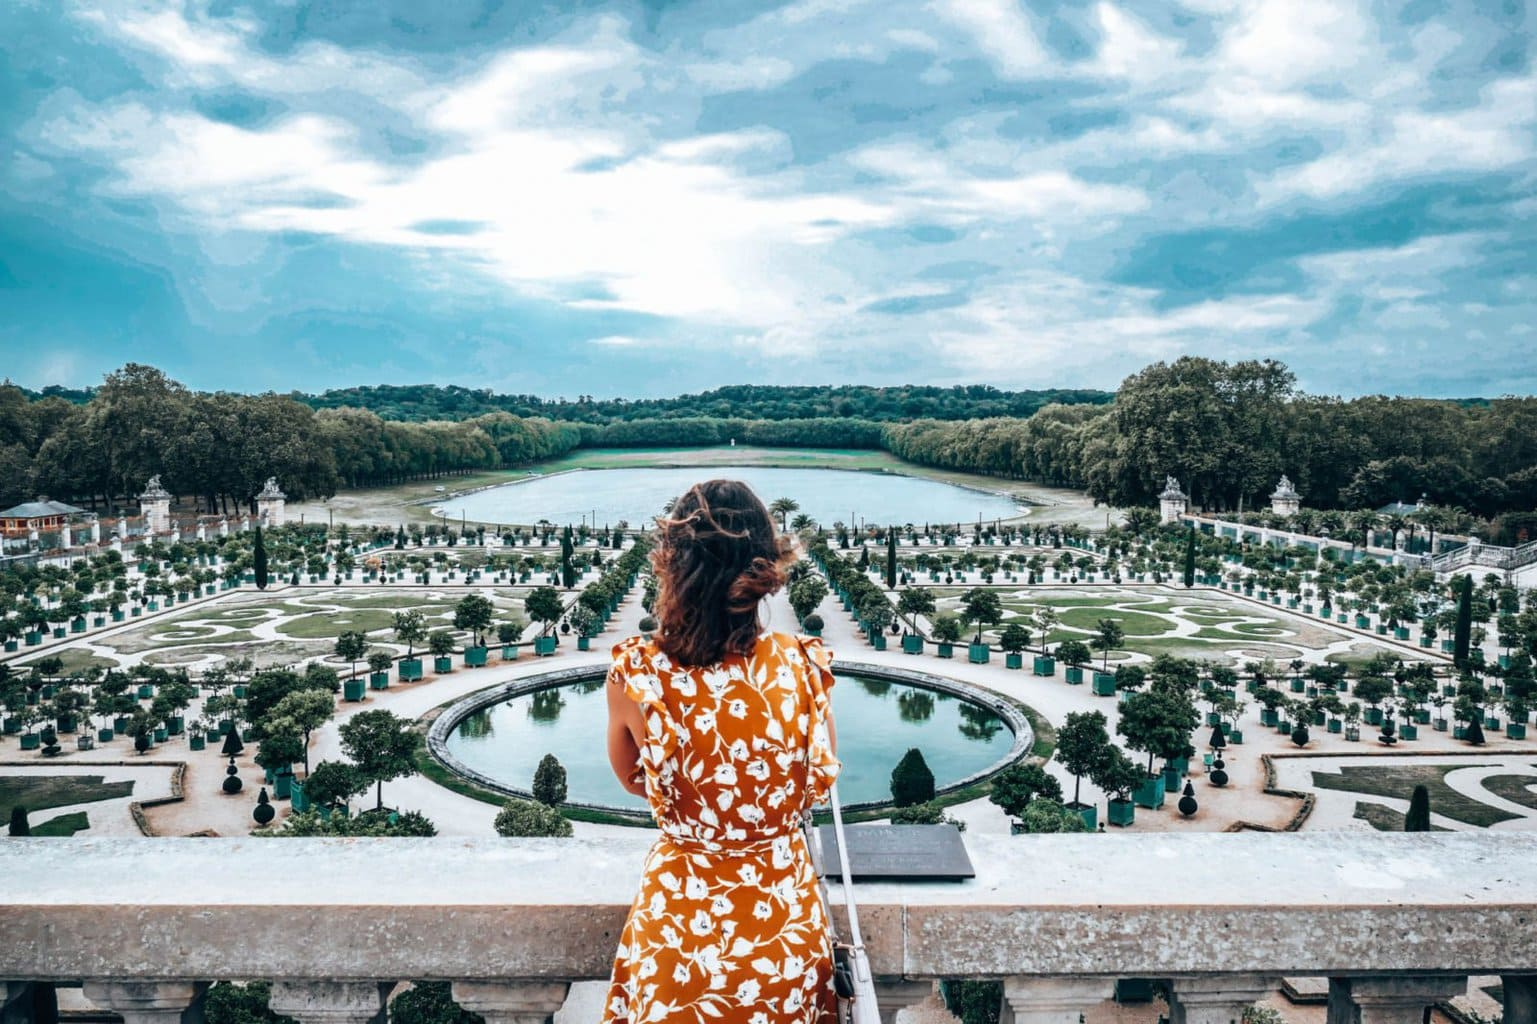 Lee looking out at gardens of Versailles